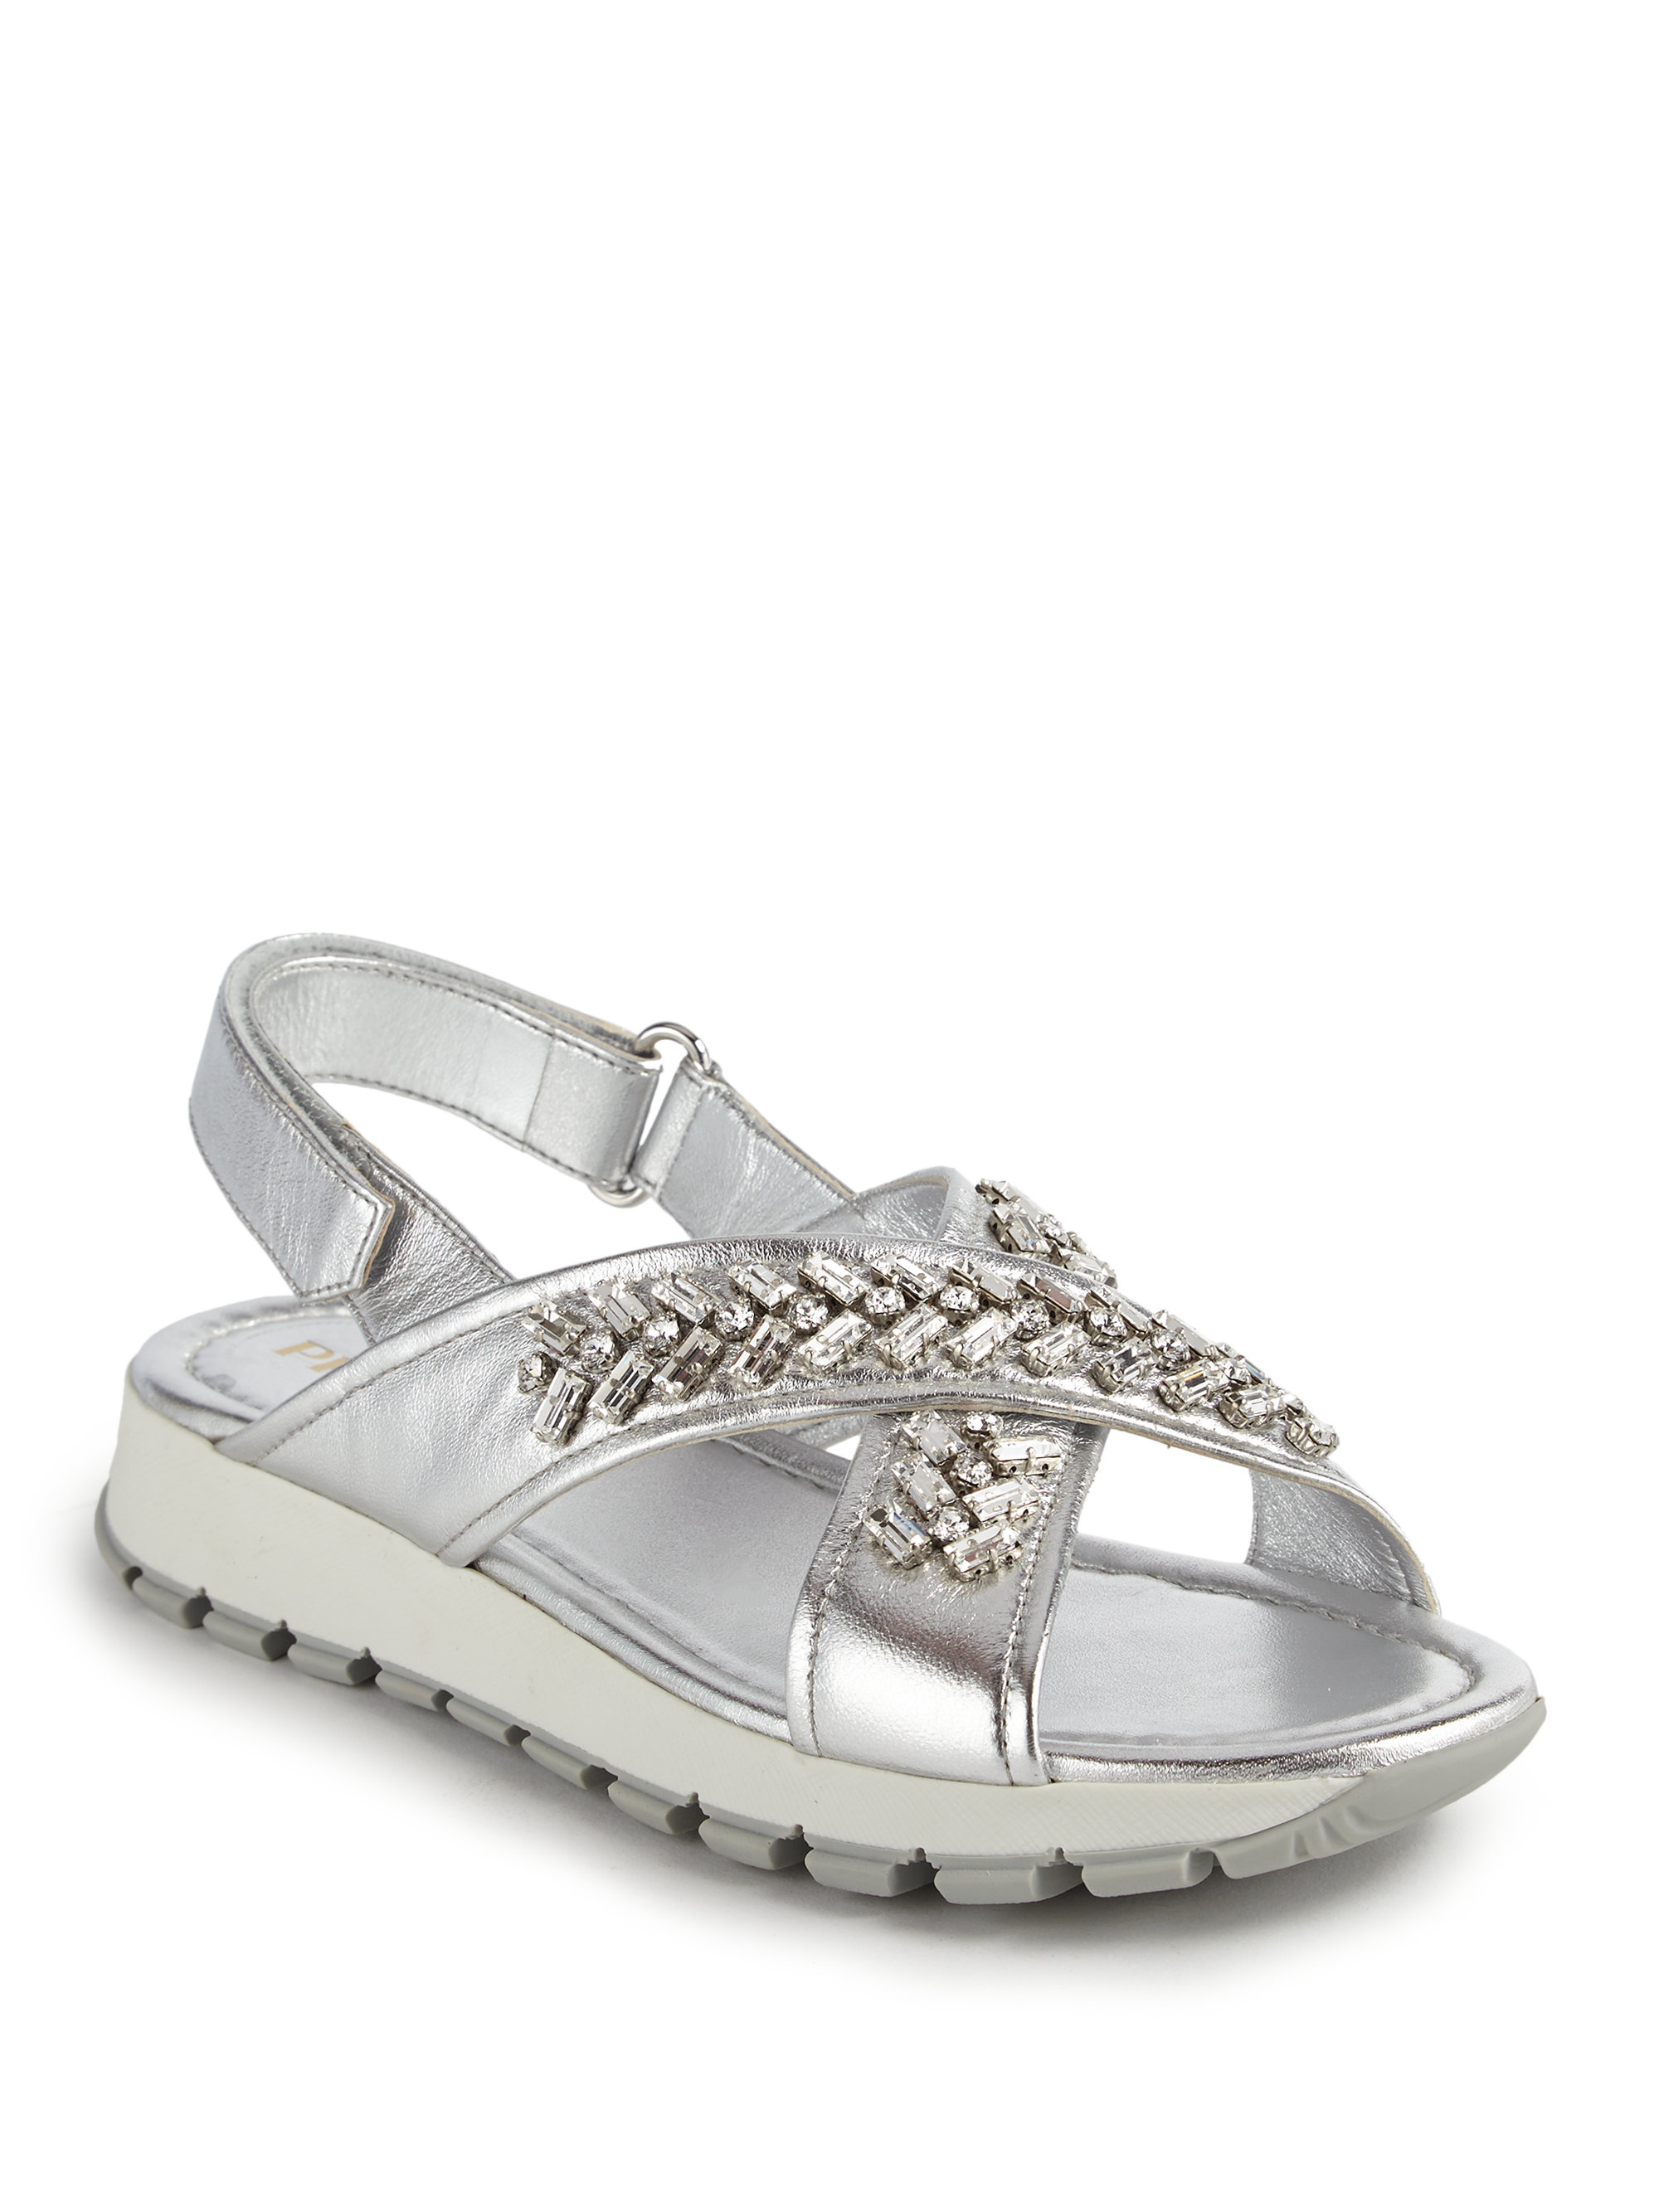 d1a46d33d9132 Lyst - Prada Crystal-embellished Metallic Leather Sandals in Metallic